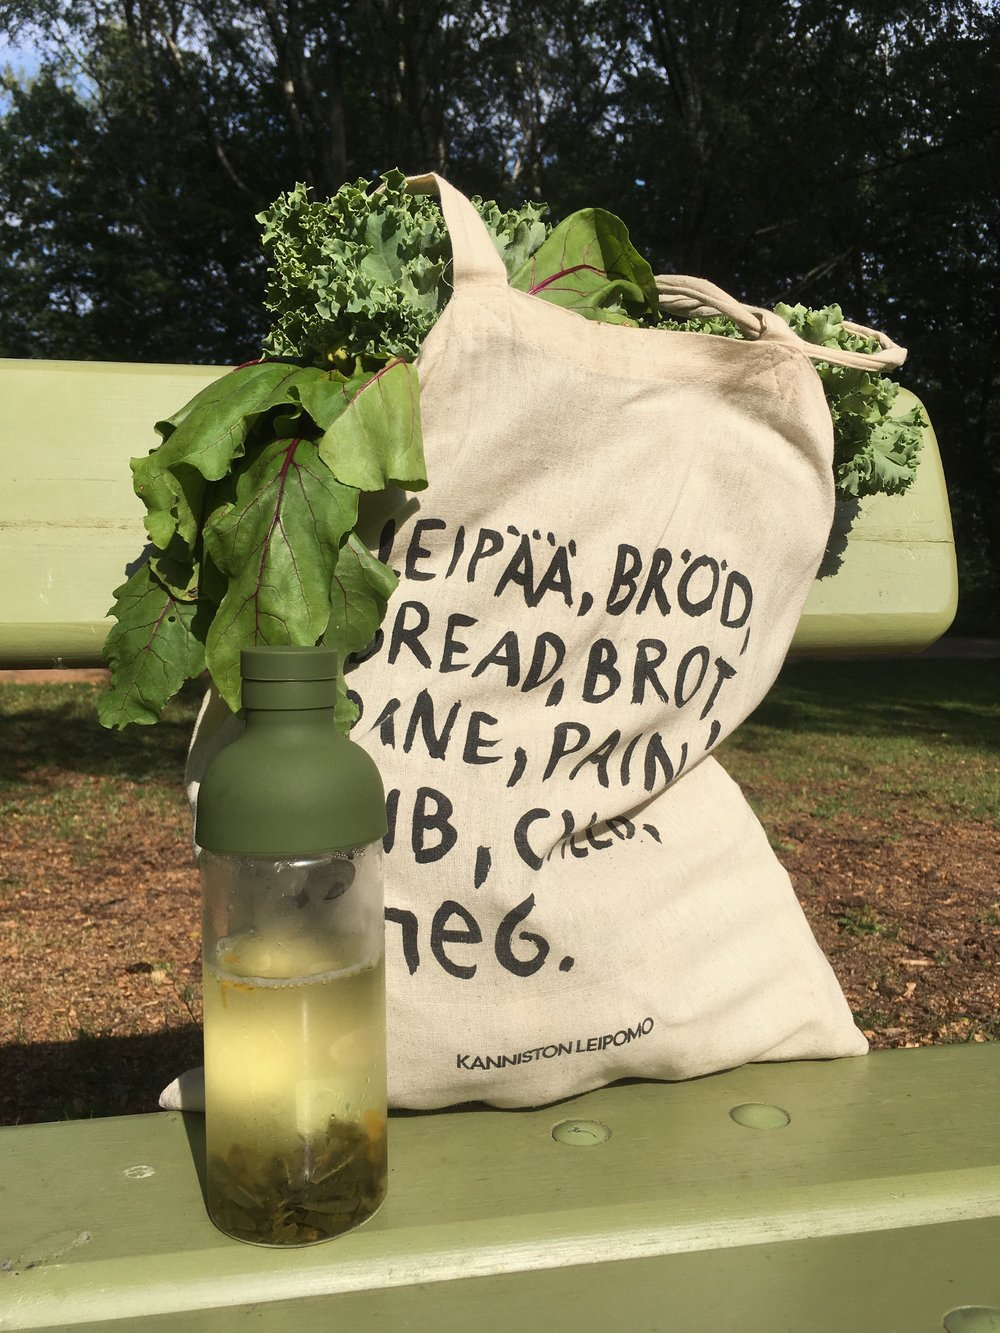 Green stop: cold-brewed tea and veggies in a bag.